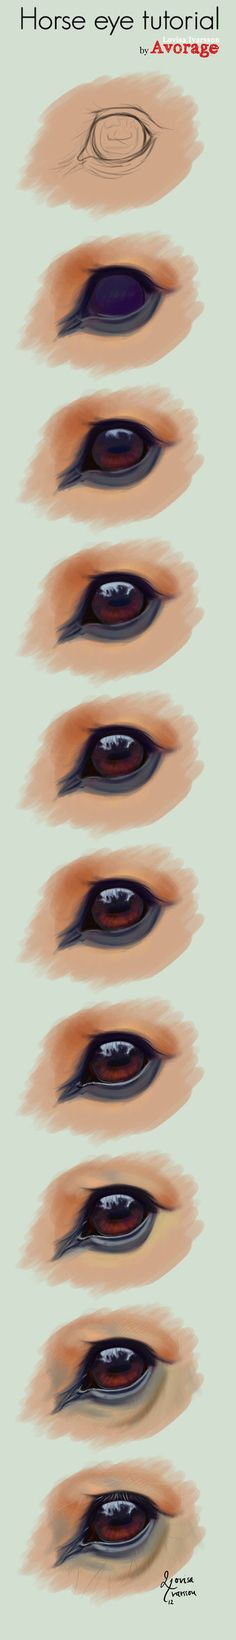 horse drawing tutorial horse eye